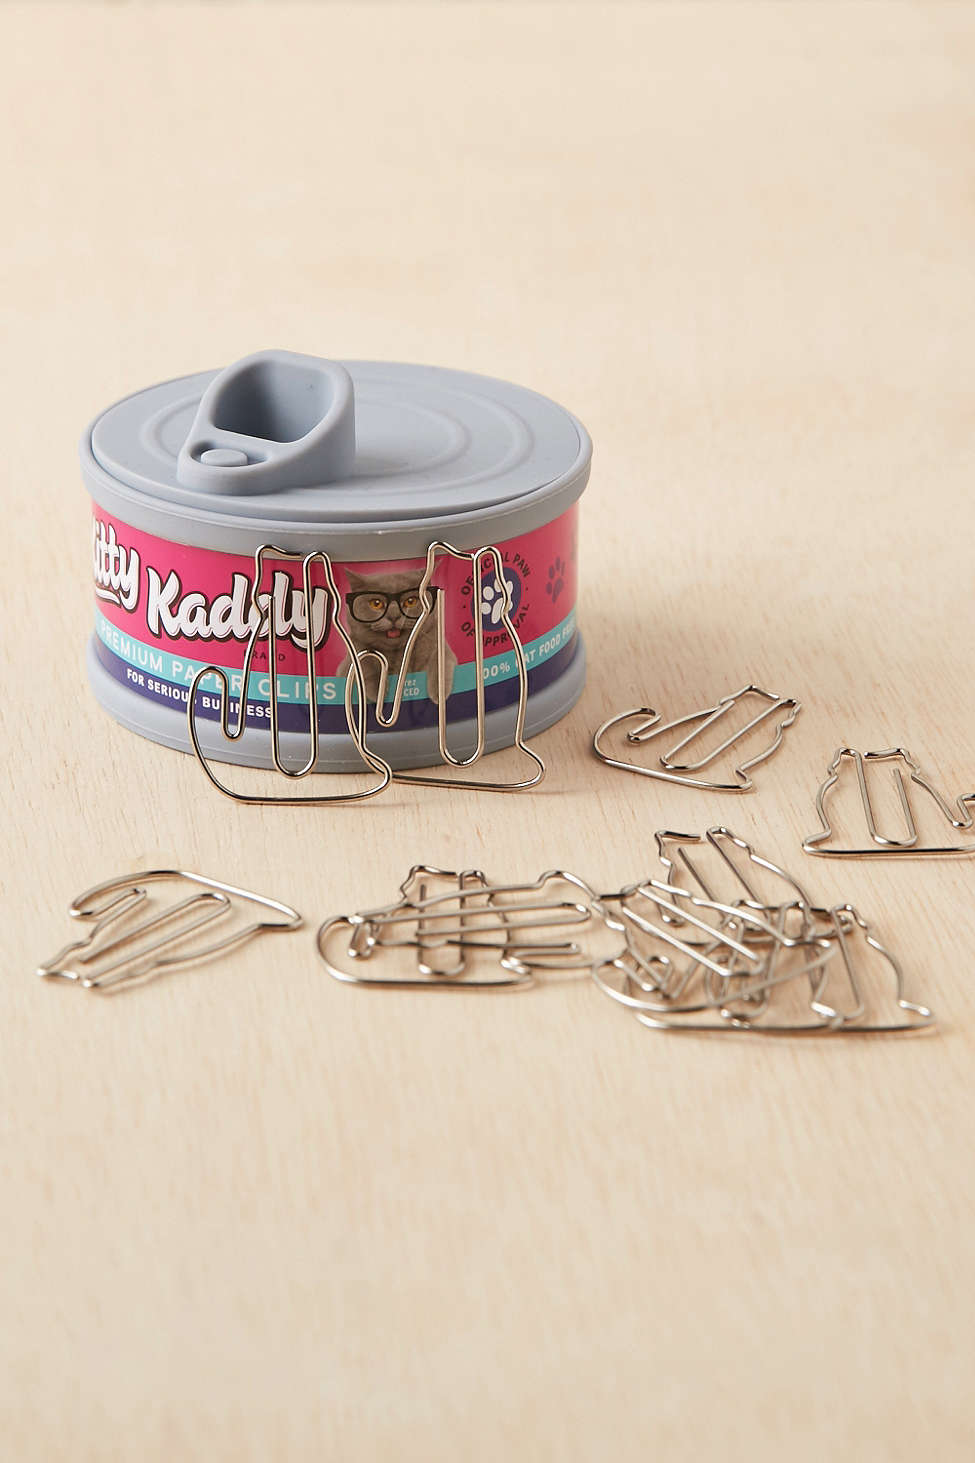 A Kitty Kaddy cat food can that stores paper clips.